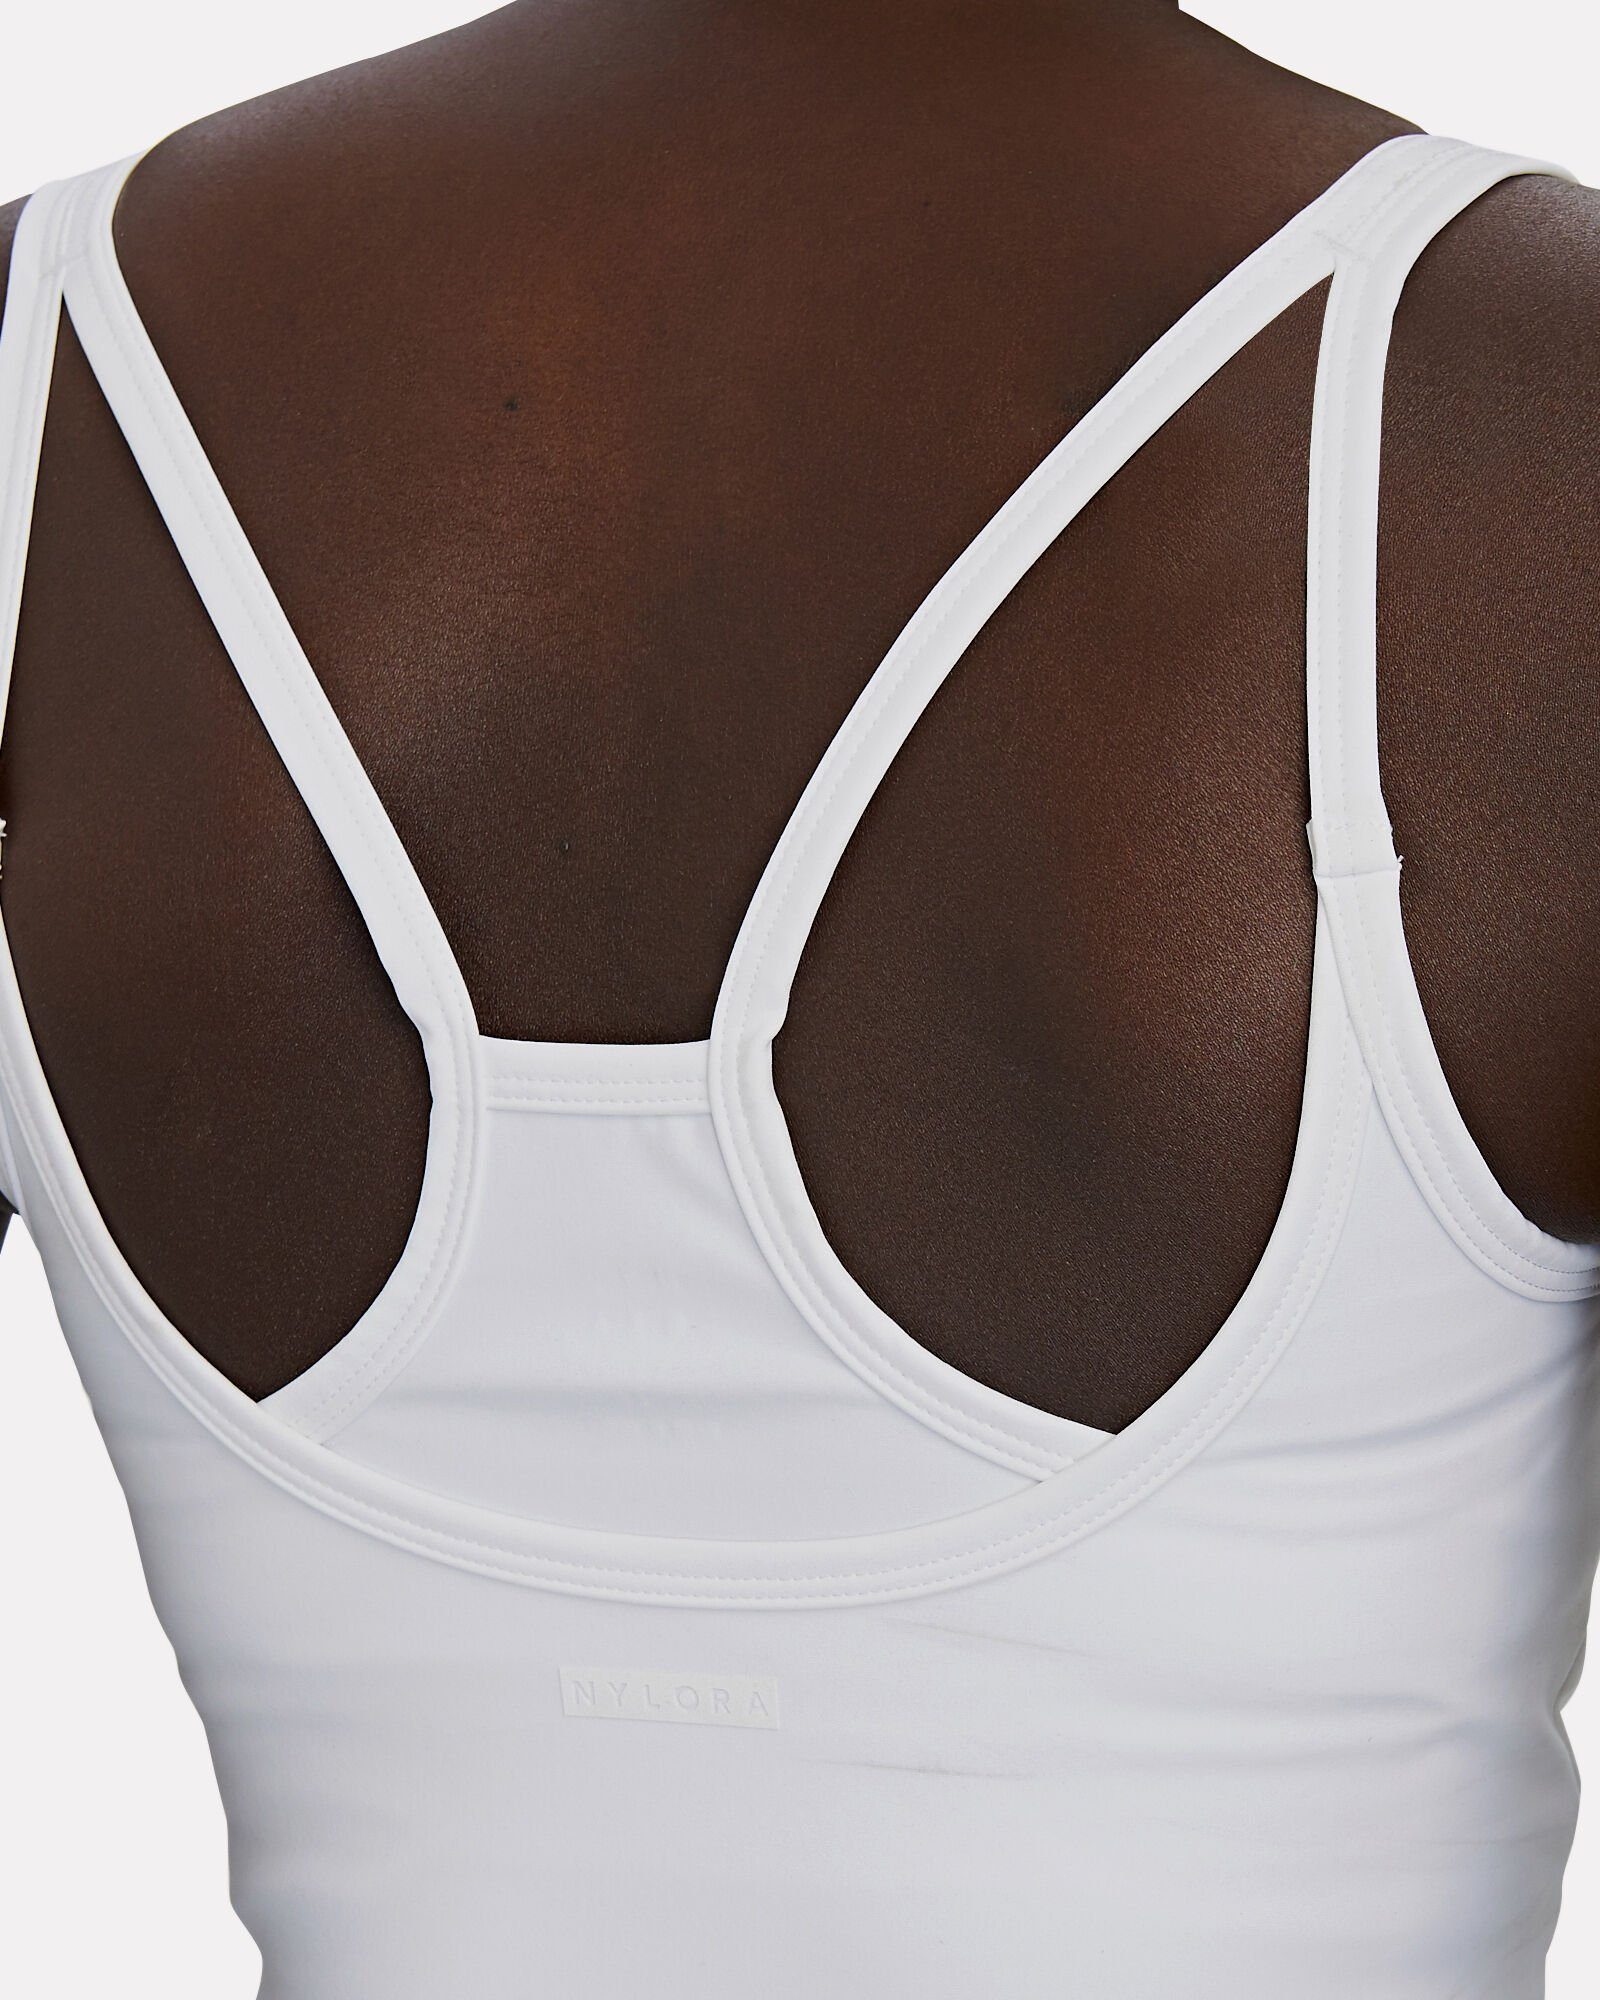 Riley Cropped Tank Top, WHITE, hi-res